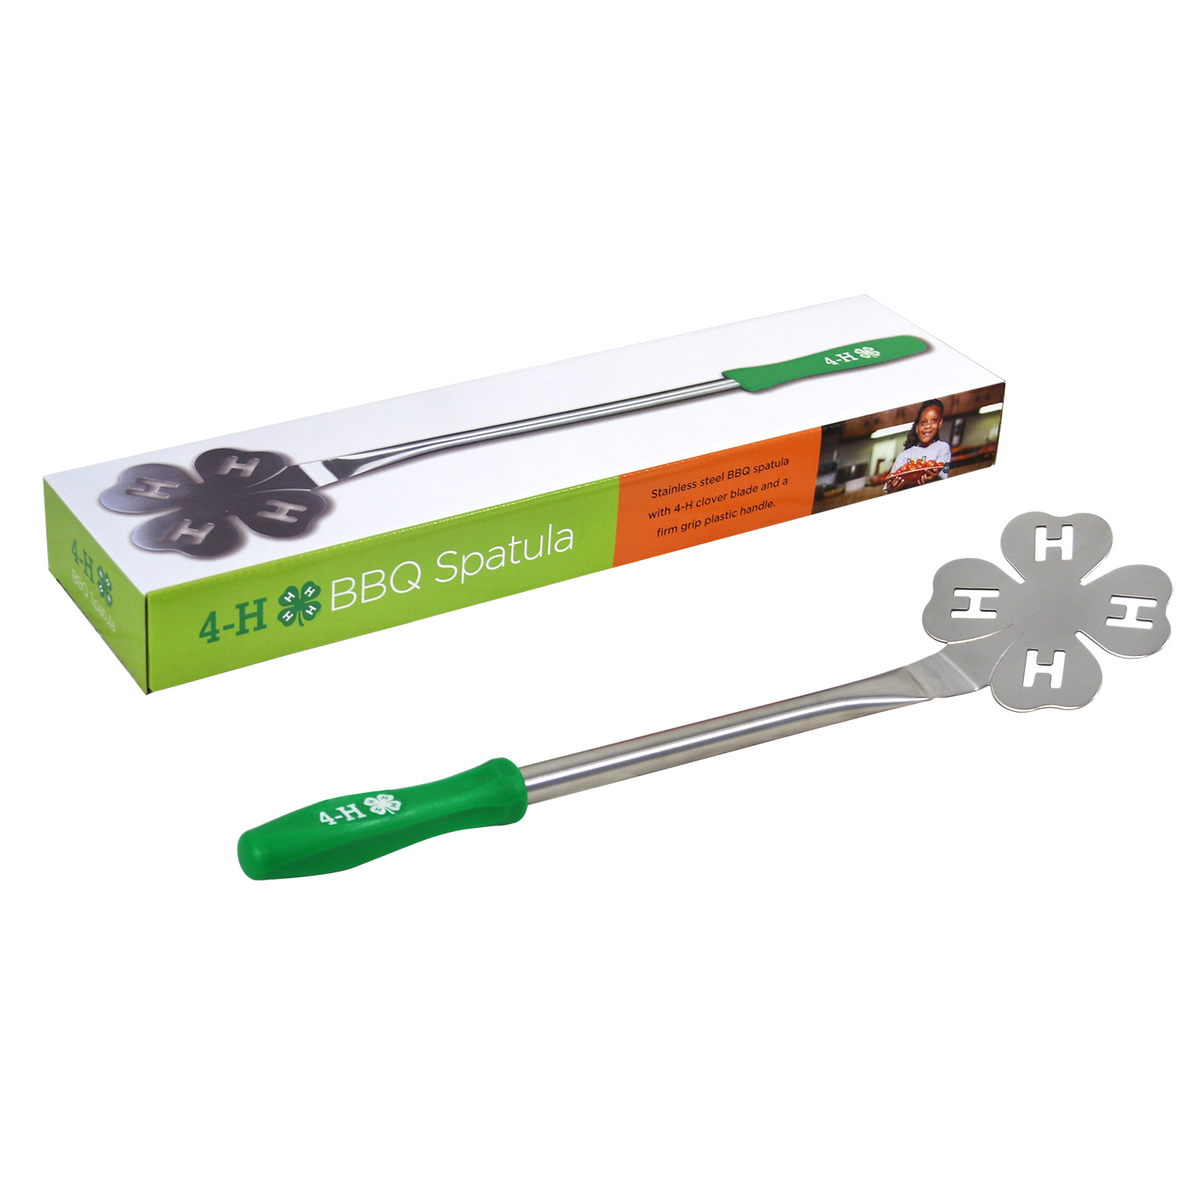 4-H Barbecue Spatula